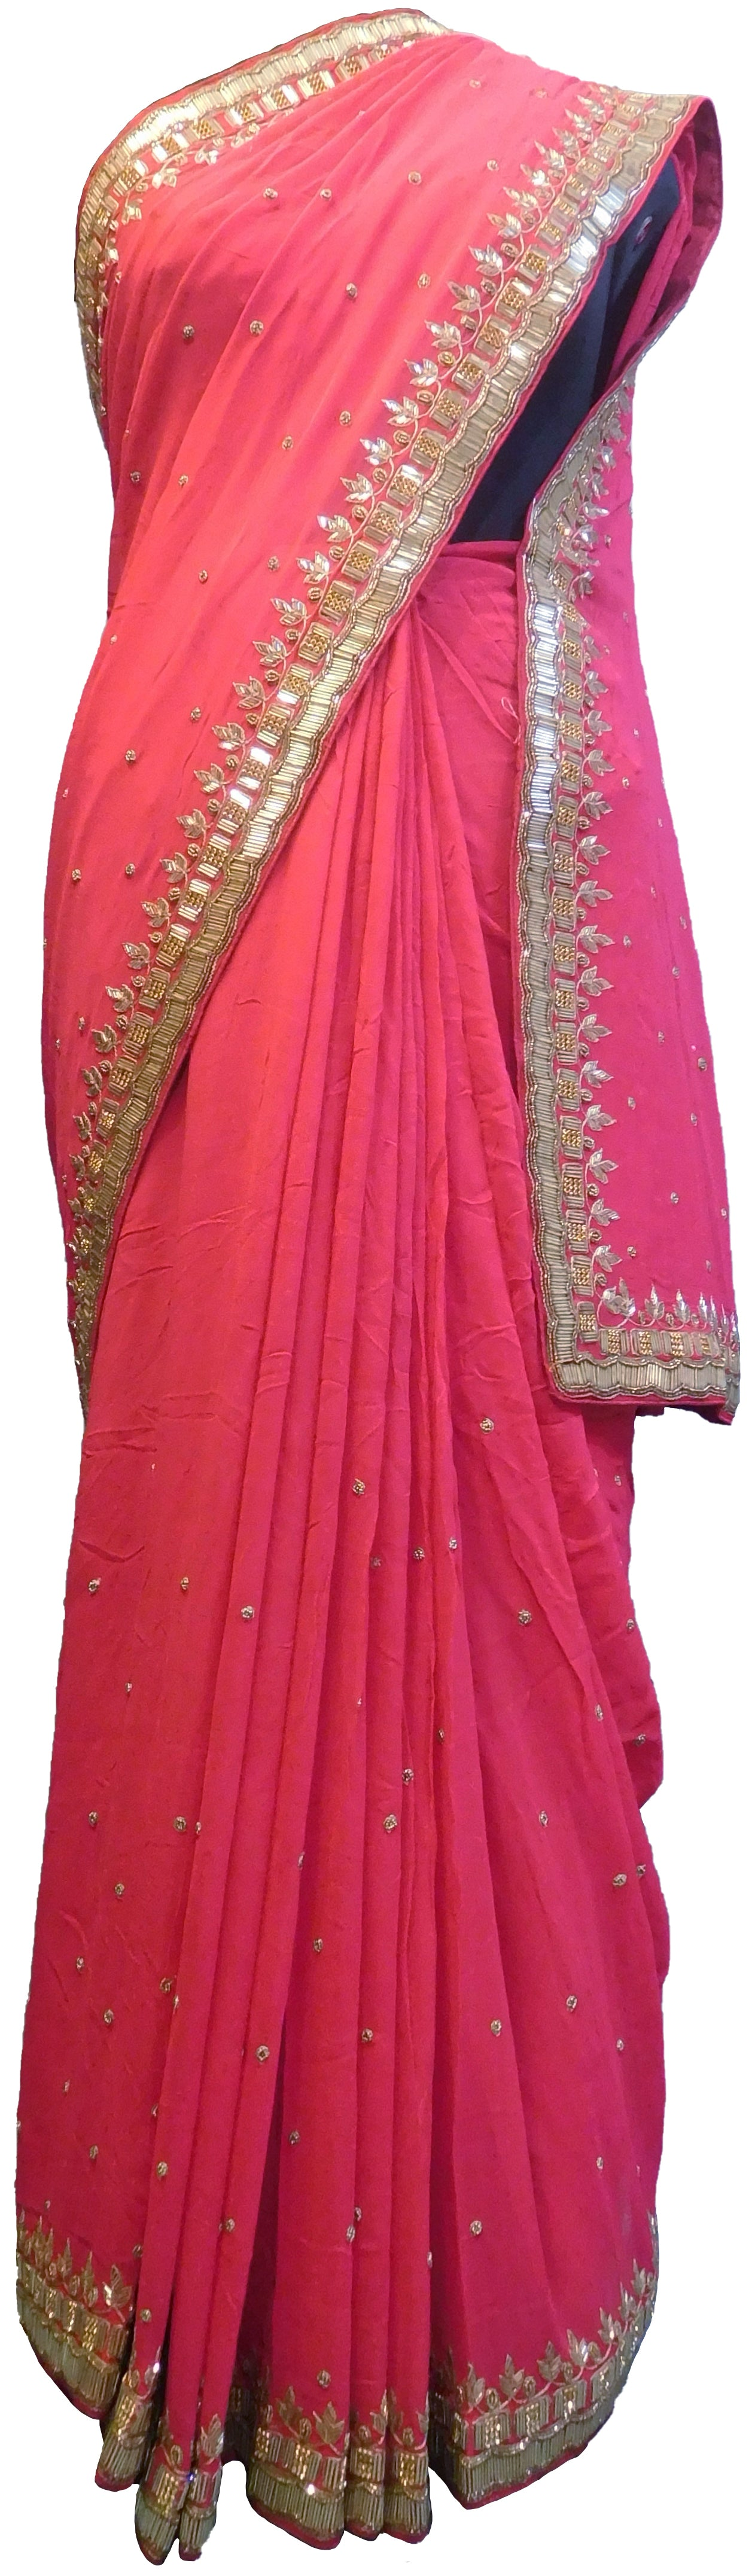 SMSAREE Pink Designer Wedding Partywear Georgette (Viscos) Cutdana Stone Beads & Thread Hand Embroidery Work Bridal Saree Sari With Blouse Piece E512